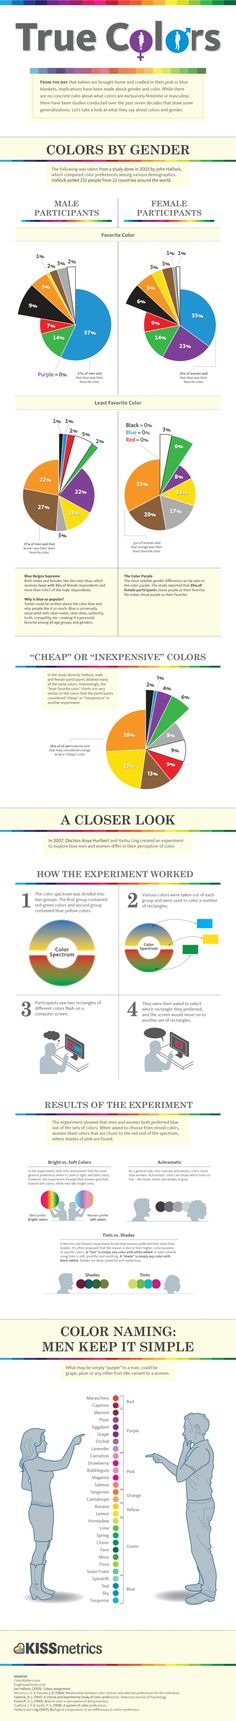 Check out this great infographic about the different ways that men and women see color. Great to know when you're marketing to a specific gender.True Colors – Breakdown of Color Preferences by Gender Web Design, Website Design, Blog Design, Design Color, Brand Design, Conception Web, Color Psychology, Grafik Design, Data Visualization